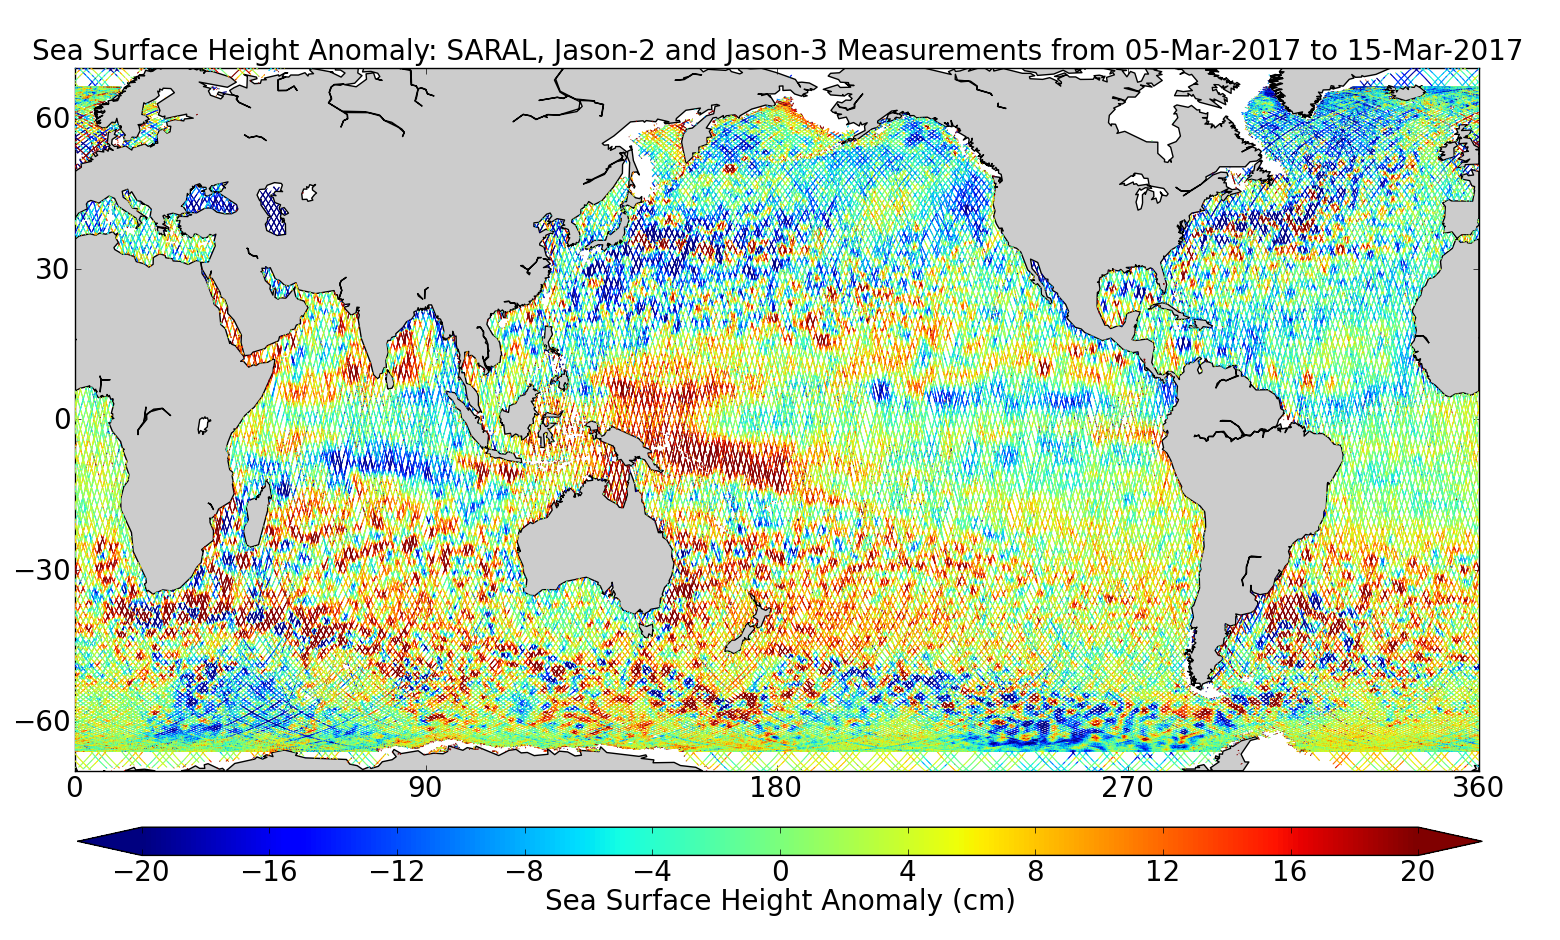 Sea Surface Height Anomaly: SARAL, Jason-2 and Jason-3 Measurements from 05-Mar-2017 to 15-Mar-2017